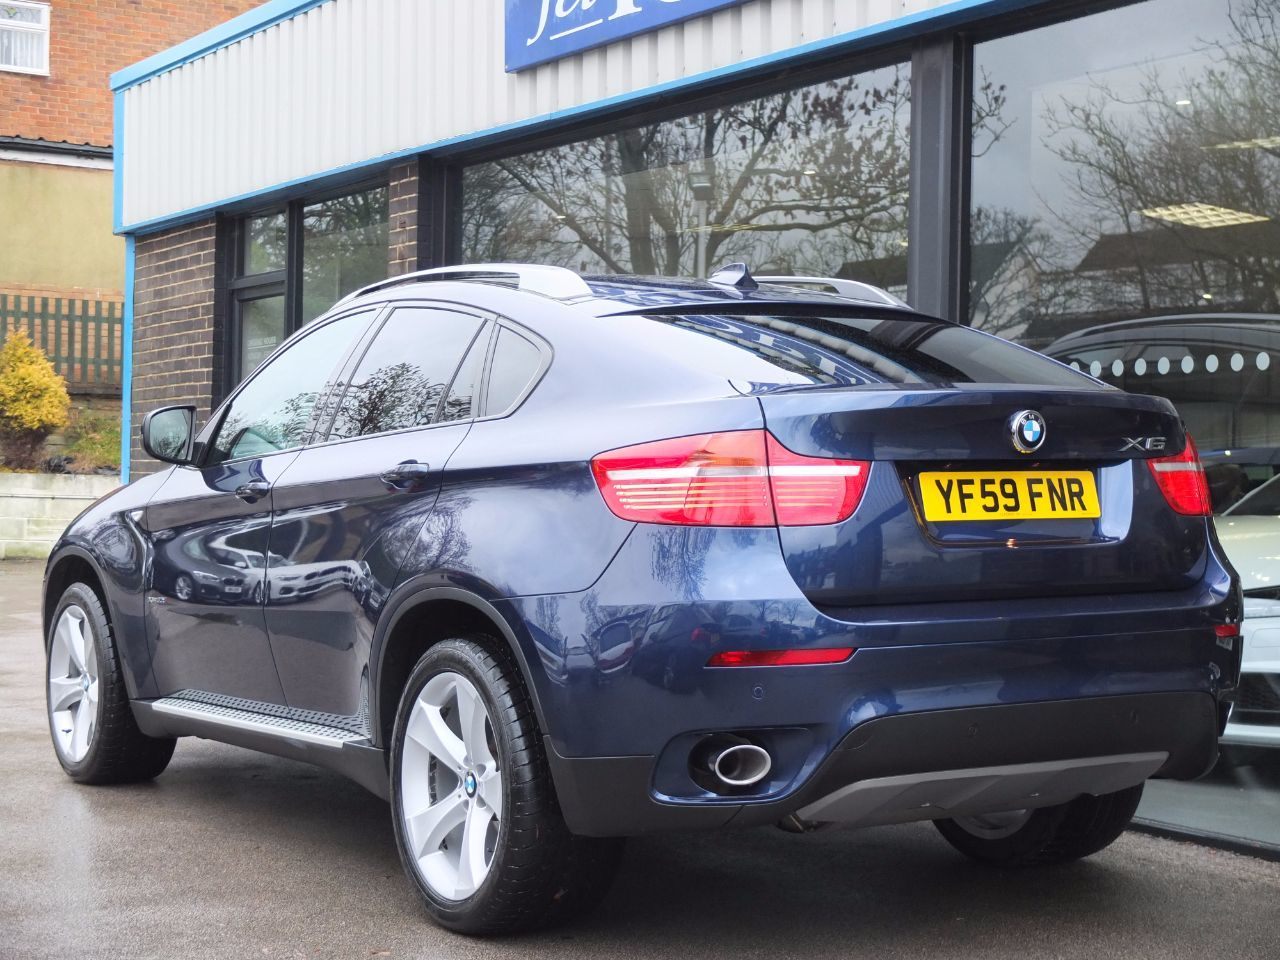 BMW X6 3.0 xDrive30d Auto (Media and Dynamic Packs) Coupe Diesel Deep Sea Blue Metallic